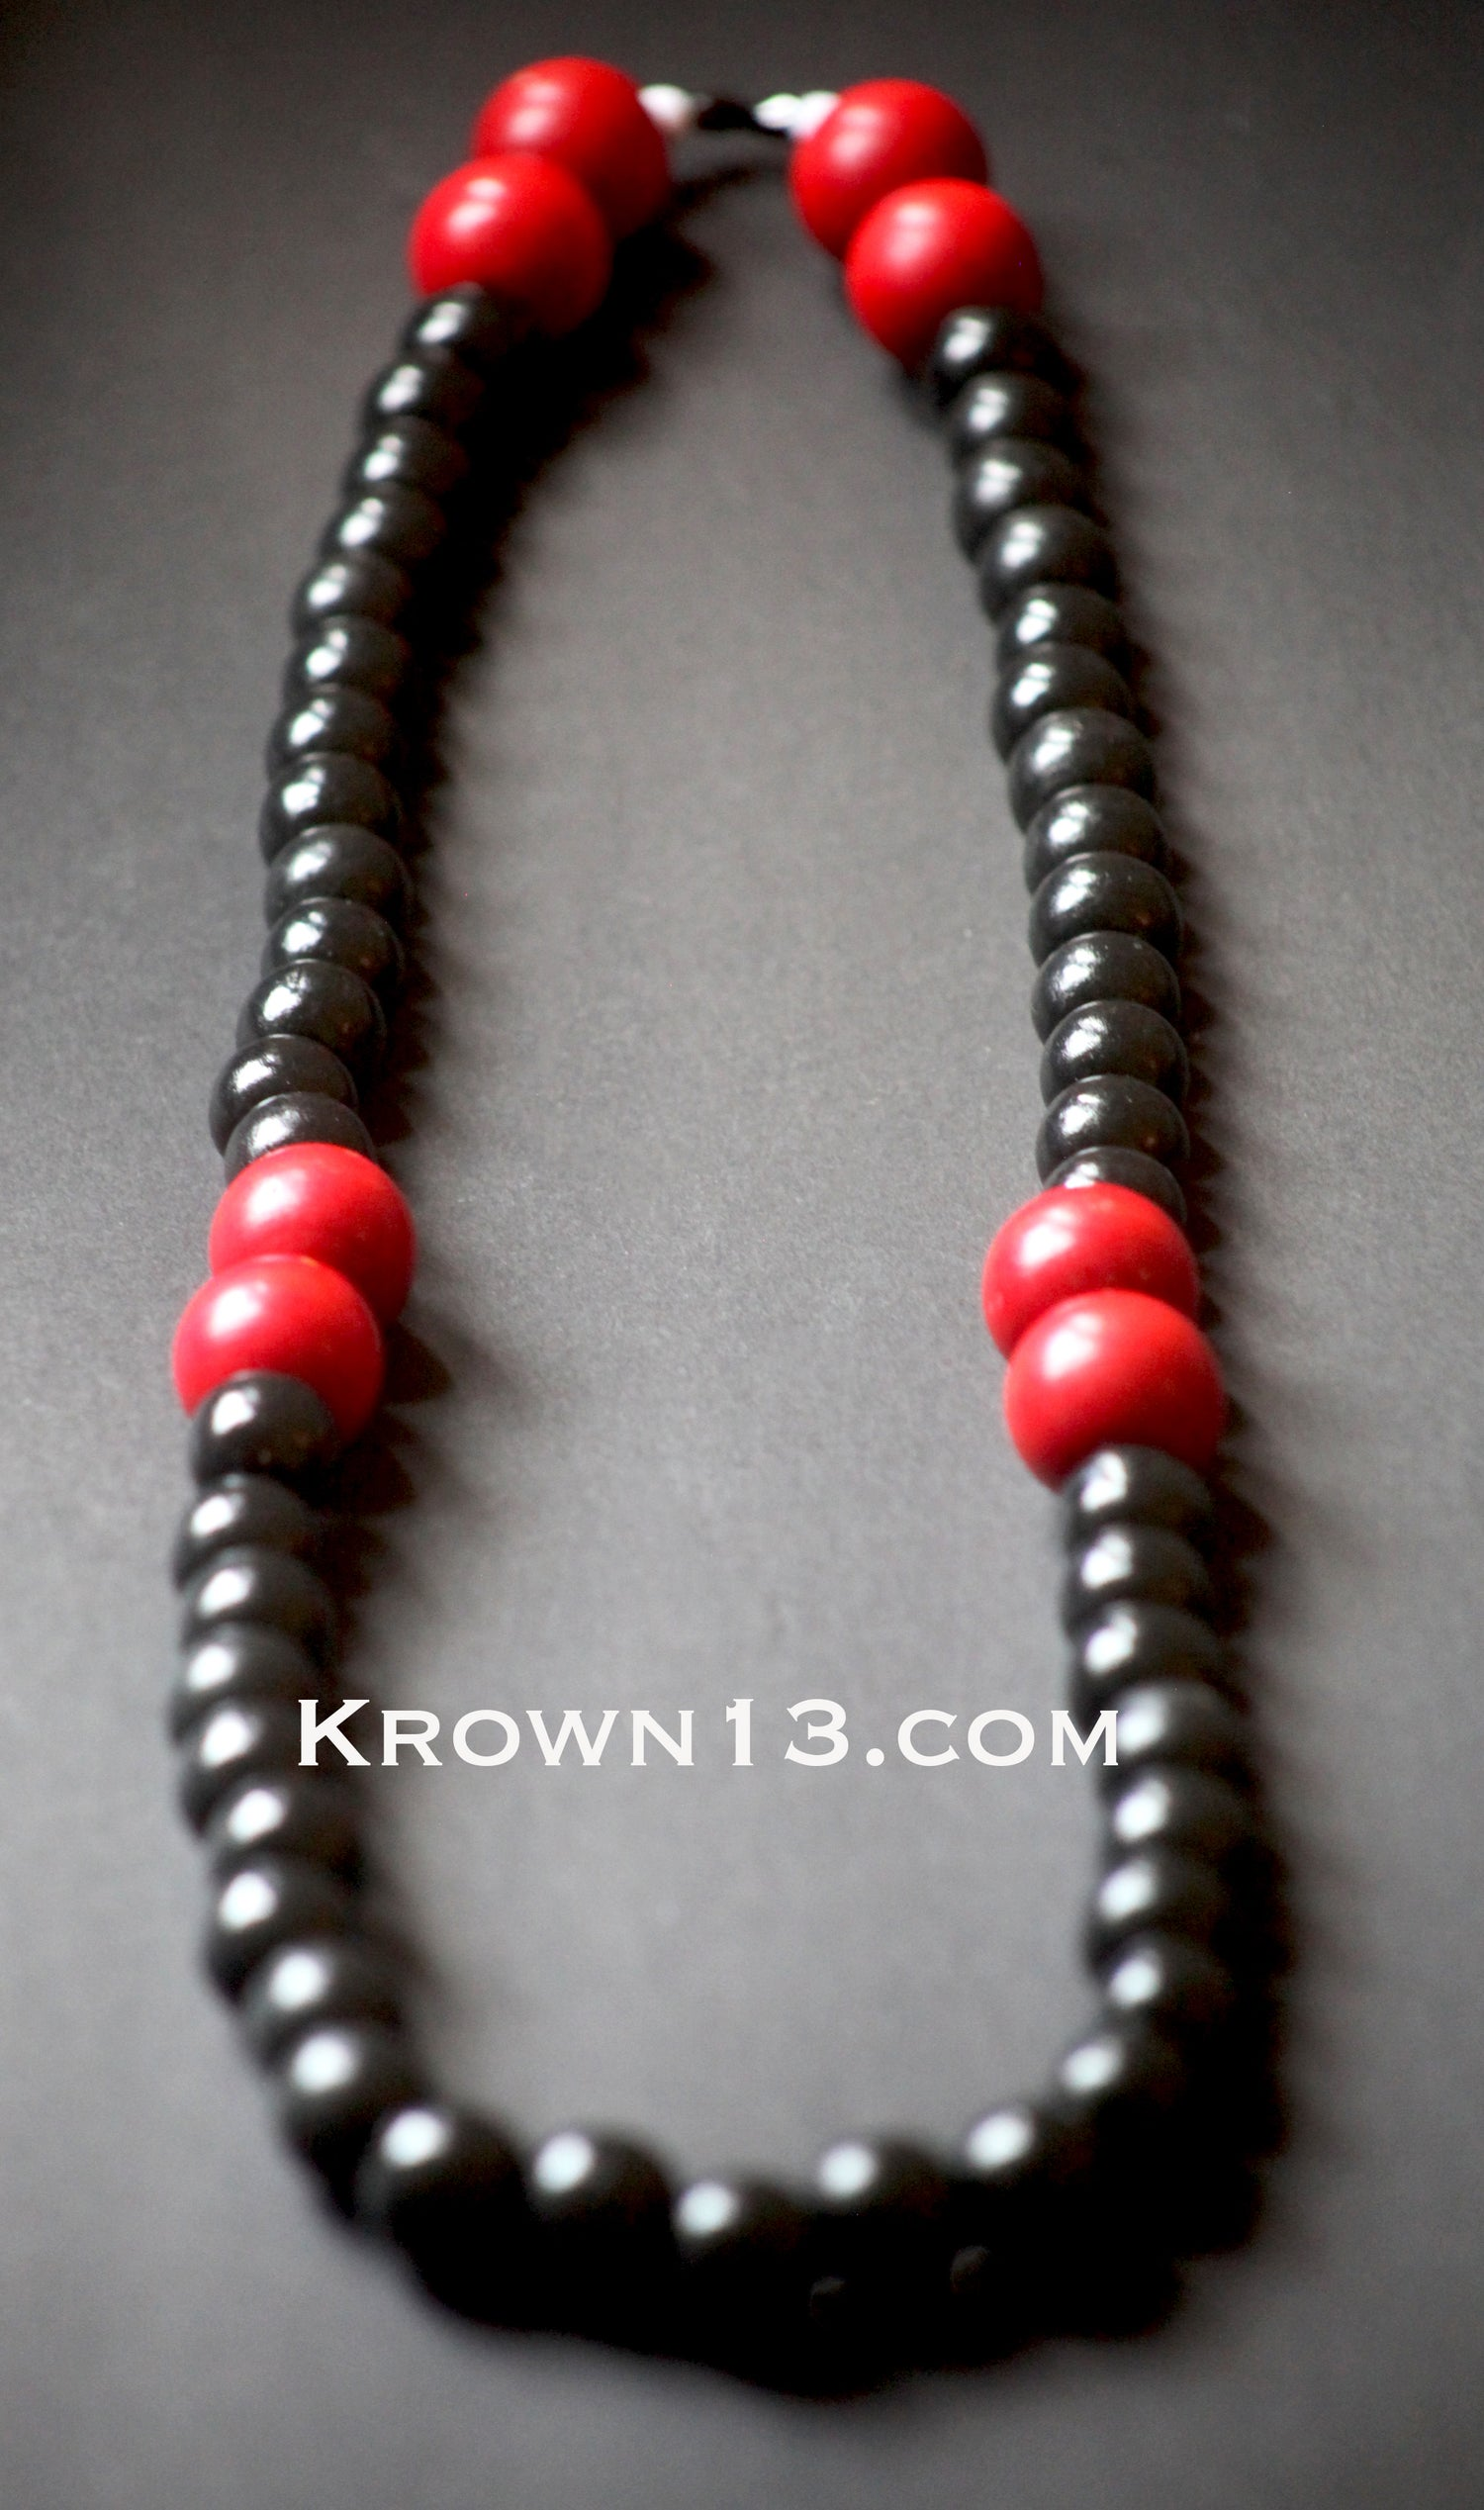 Baba's Black and Red Wood Beads